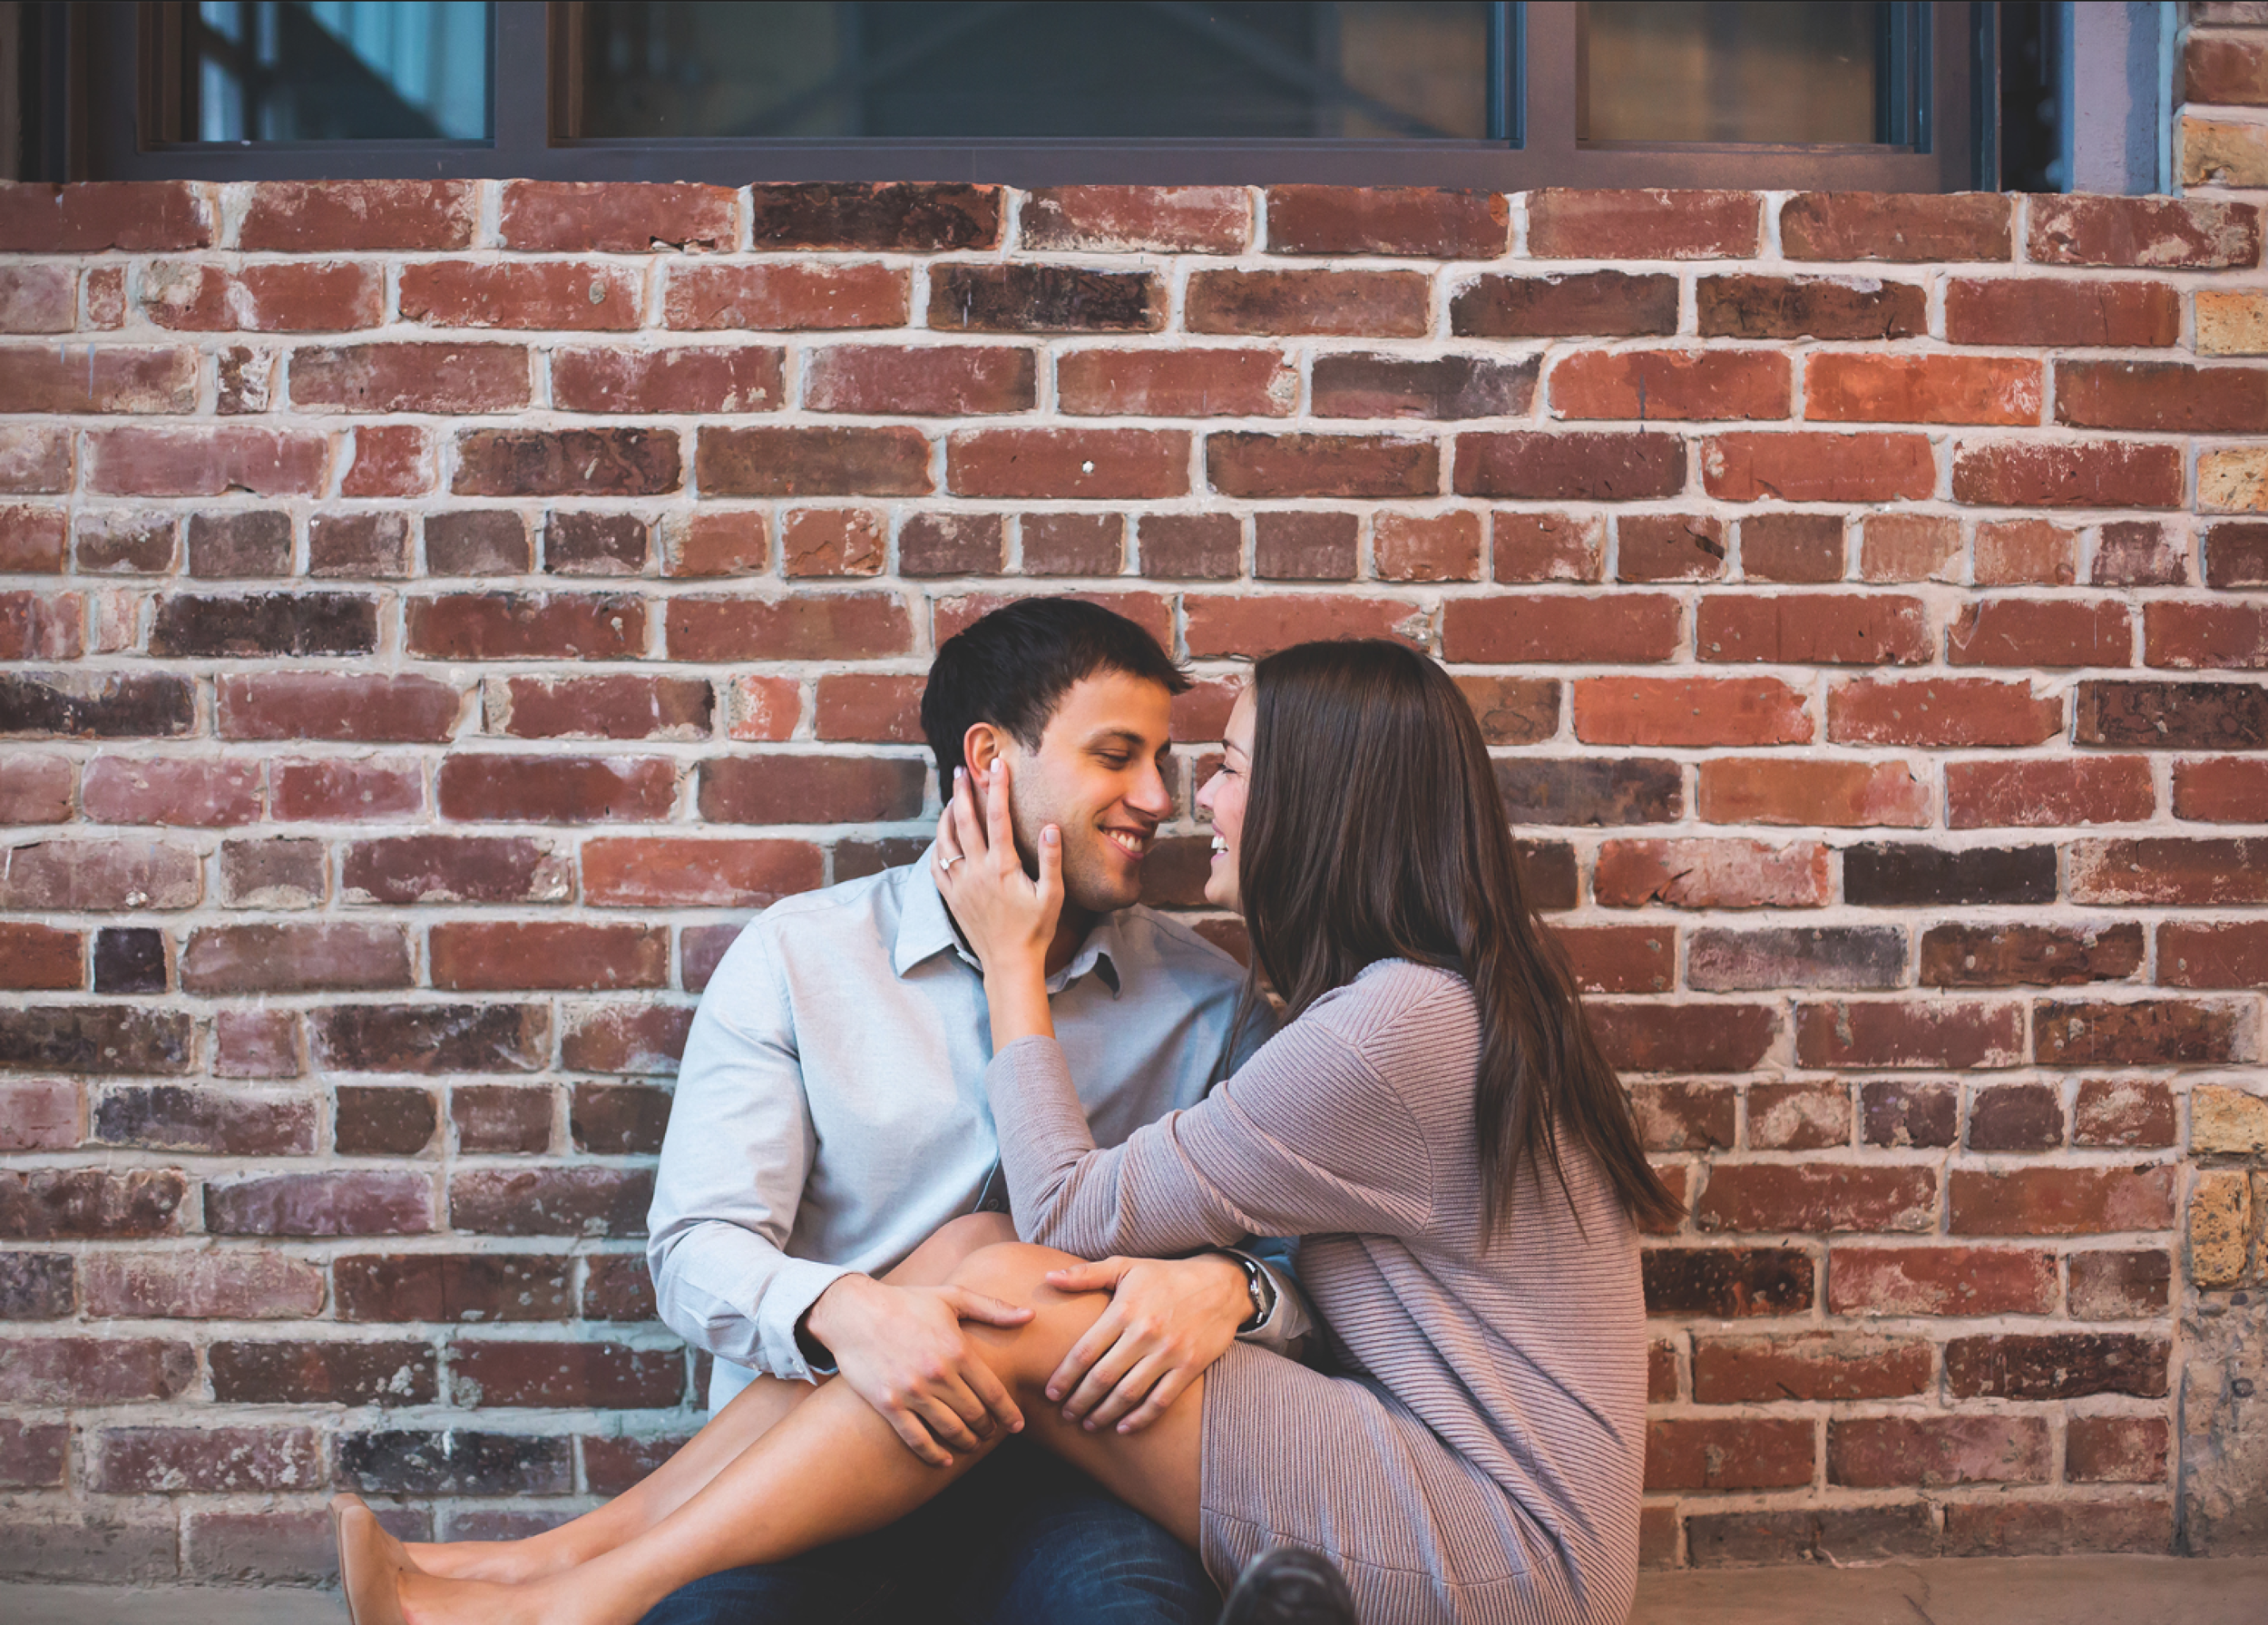 Engagement-Session-Downtown-Toronto-Hamilton-Burlington-Oakville-Niagara-Wedding-Photographer-Engaged-Photography-Artscape-Wynchwood-Barn-Urban-HamOnt-Engaged-Moments-by-Lauren-Photo-Image-10.png